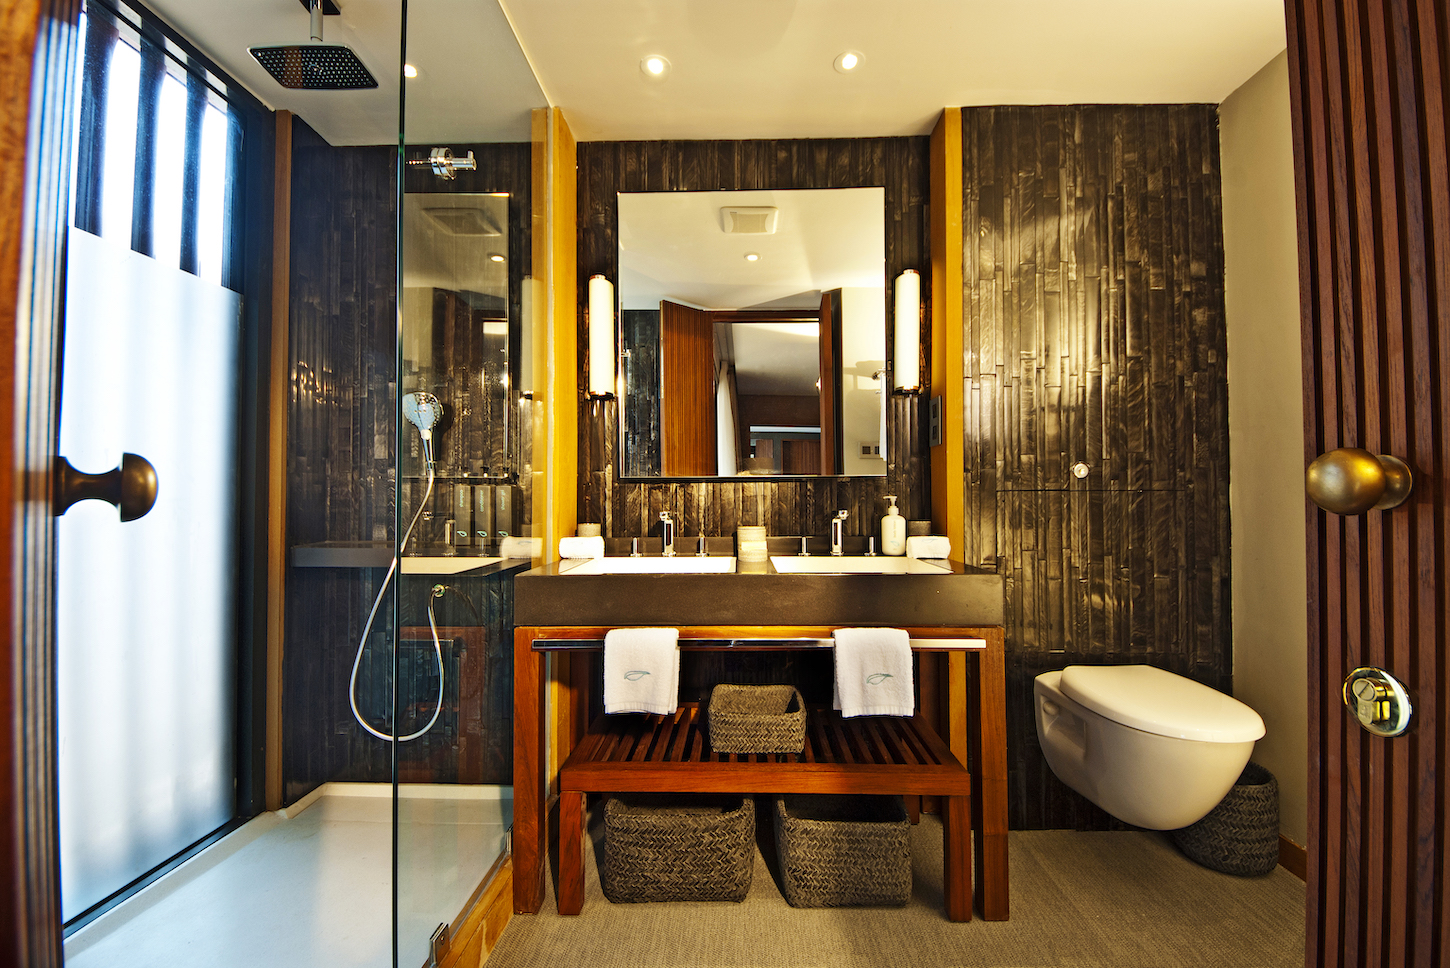 Aqua Mekong bathroom